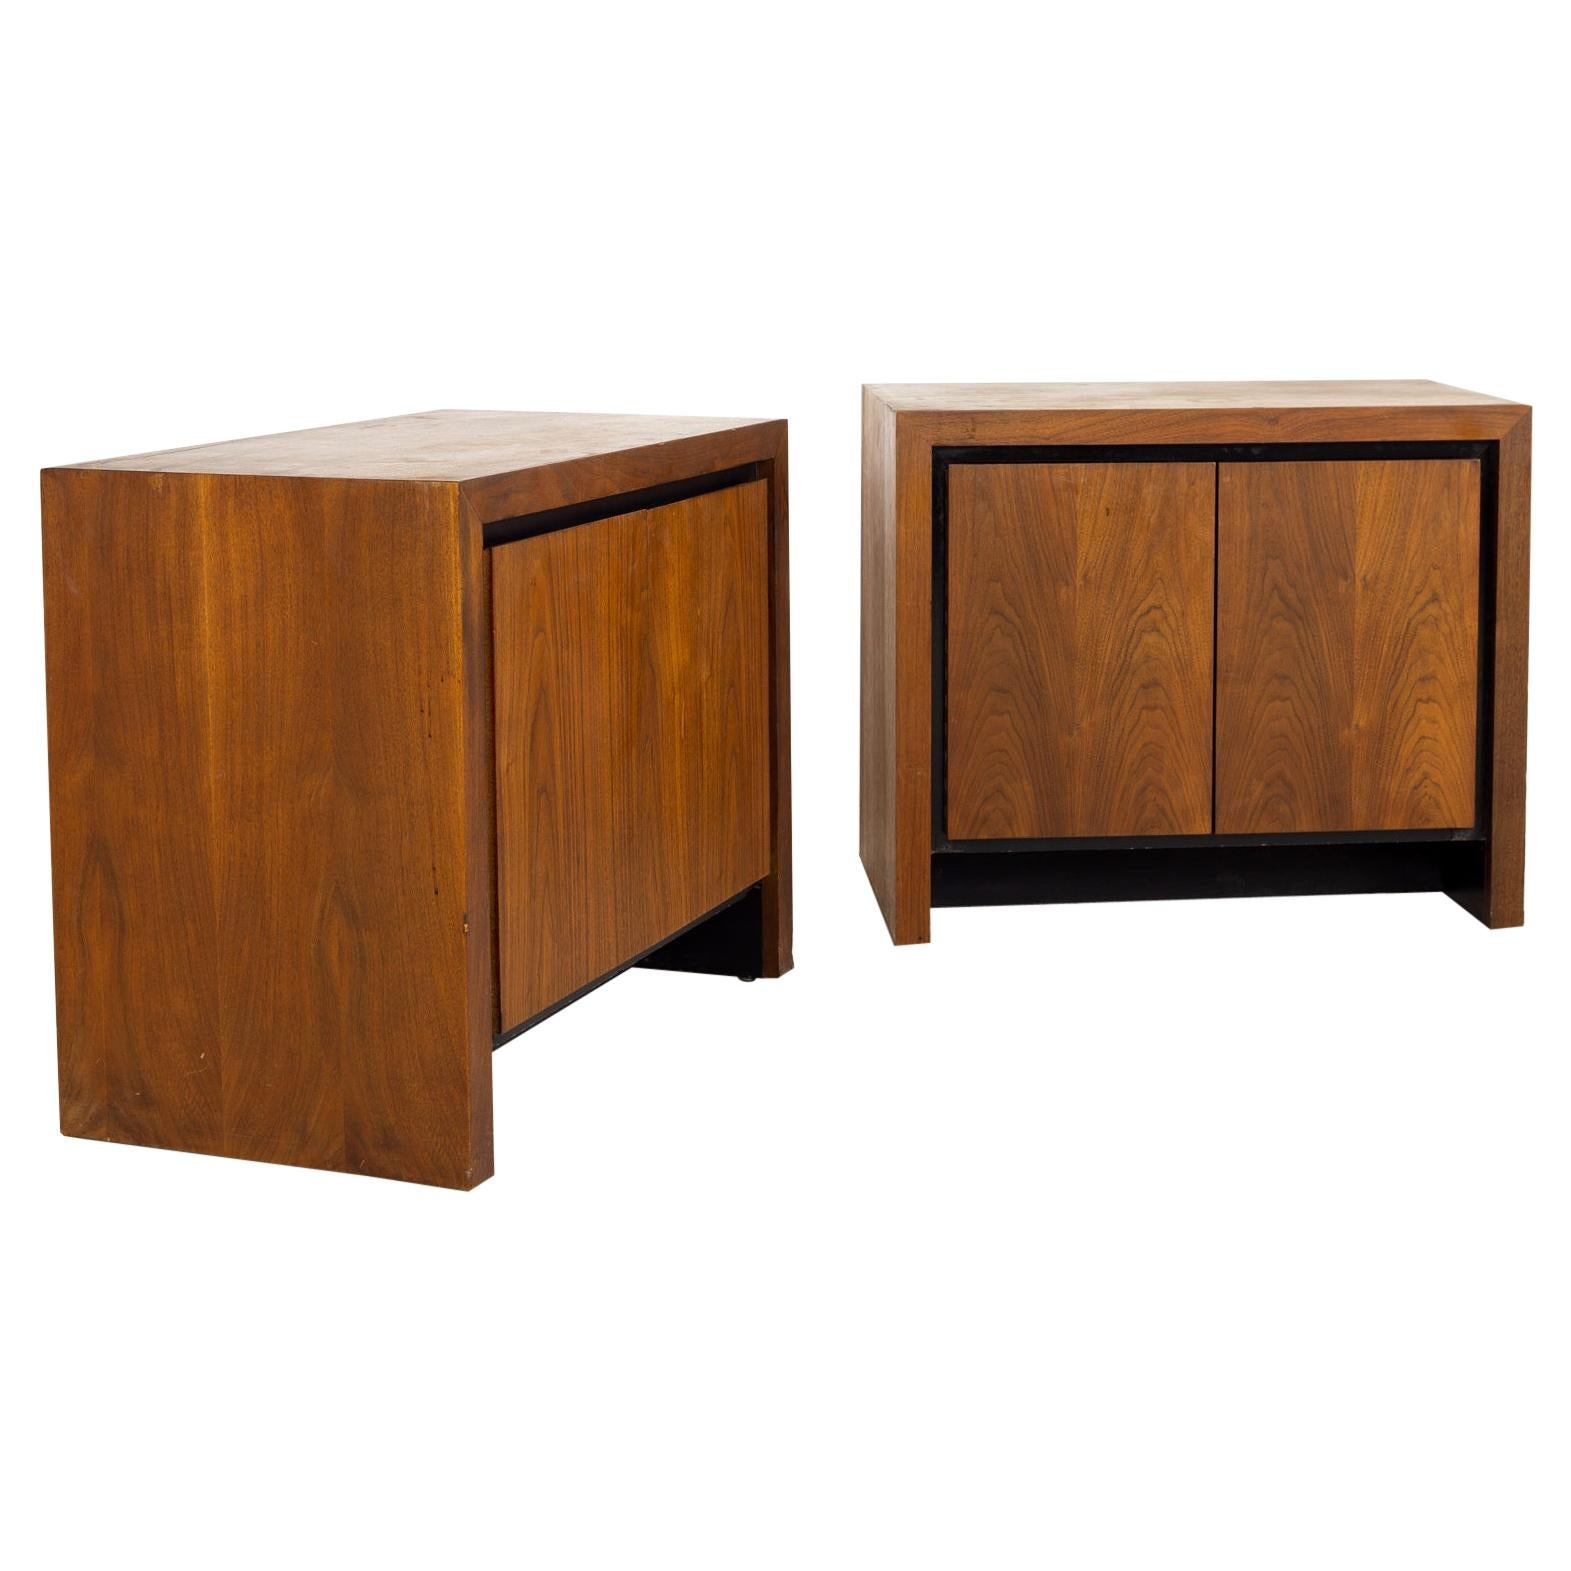 Merton Gershun for Dillingham Mid Century Bookmatched Cabinet End Table Nightsta